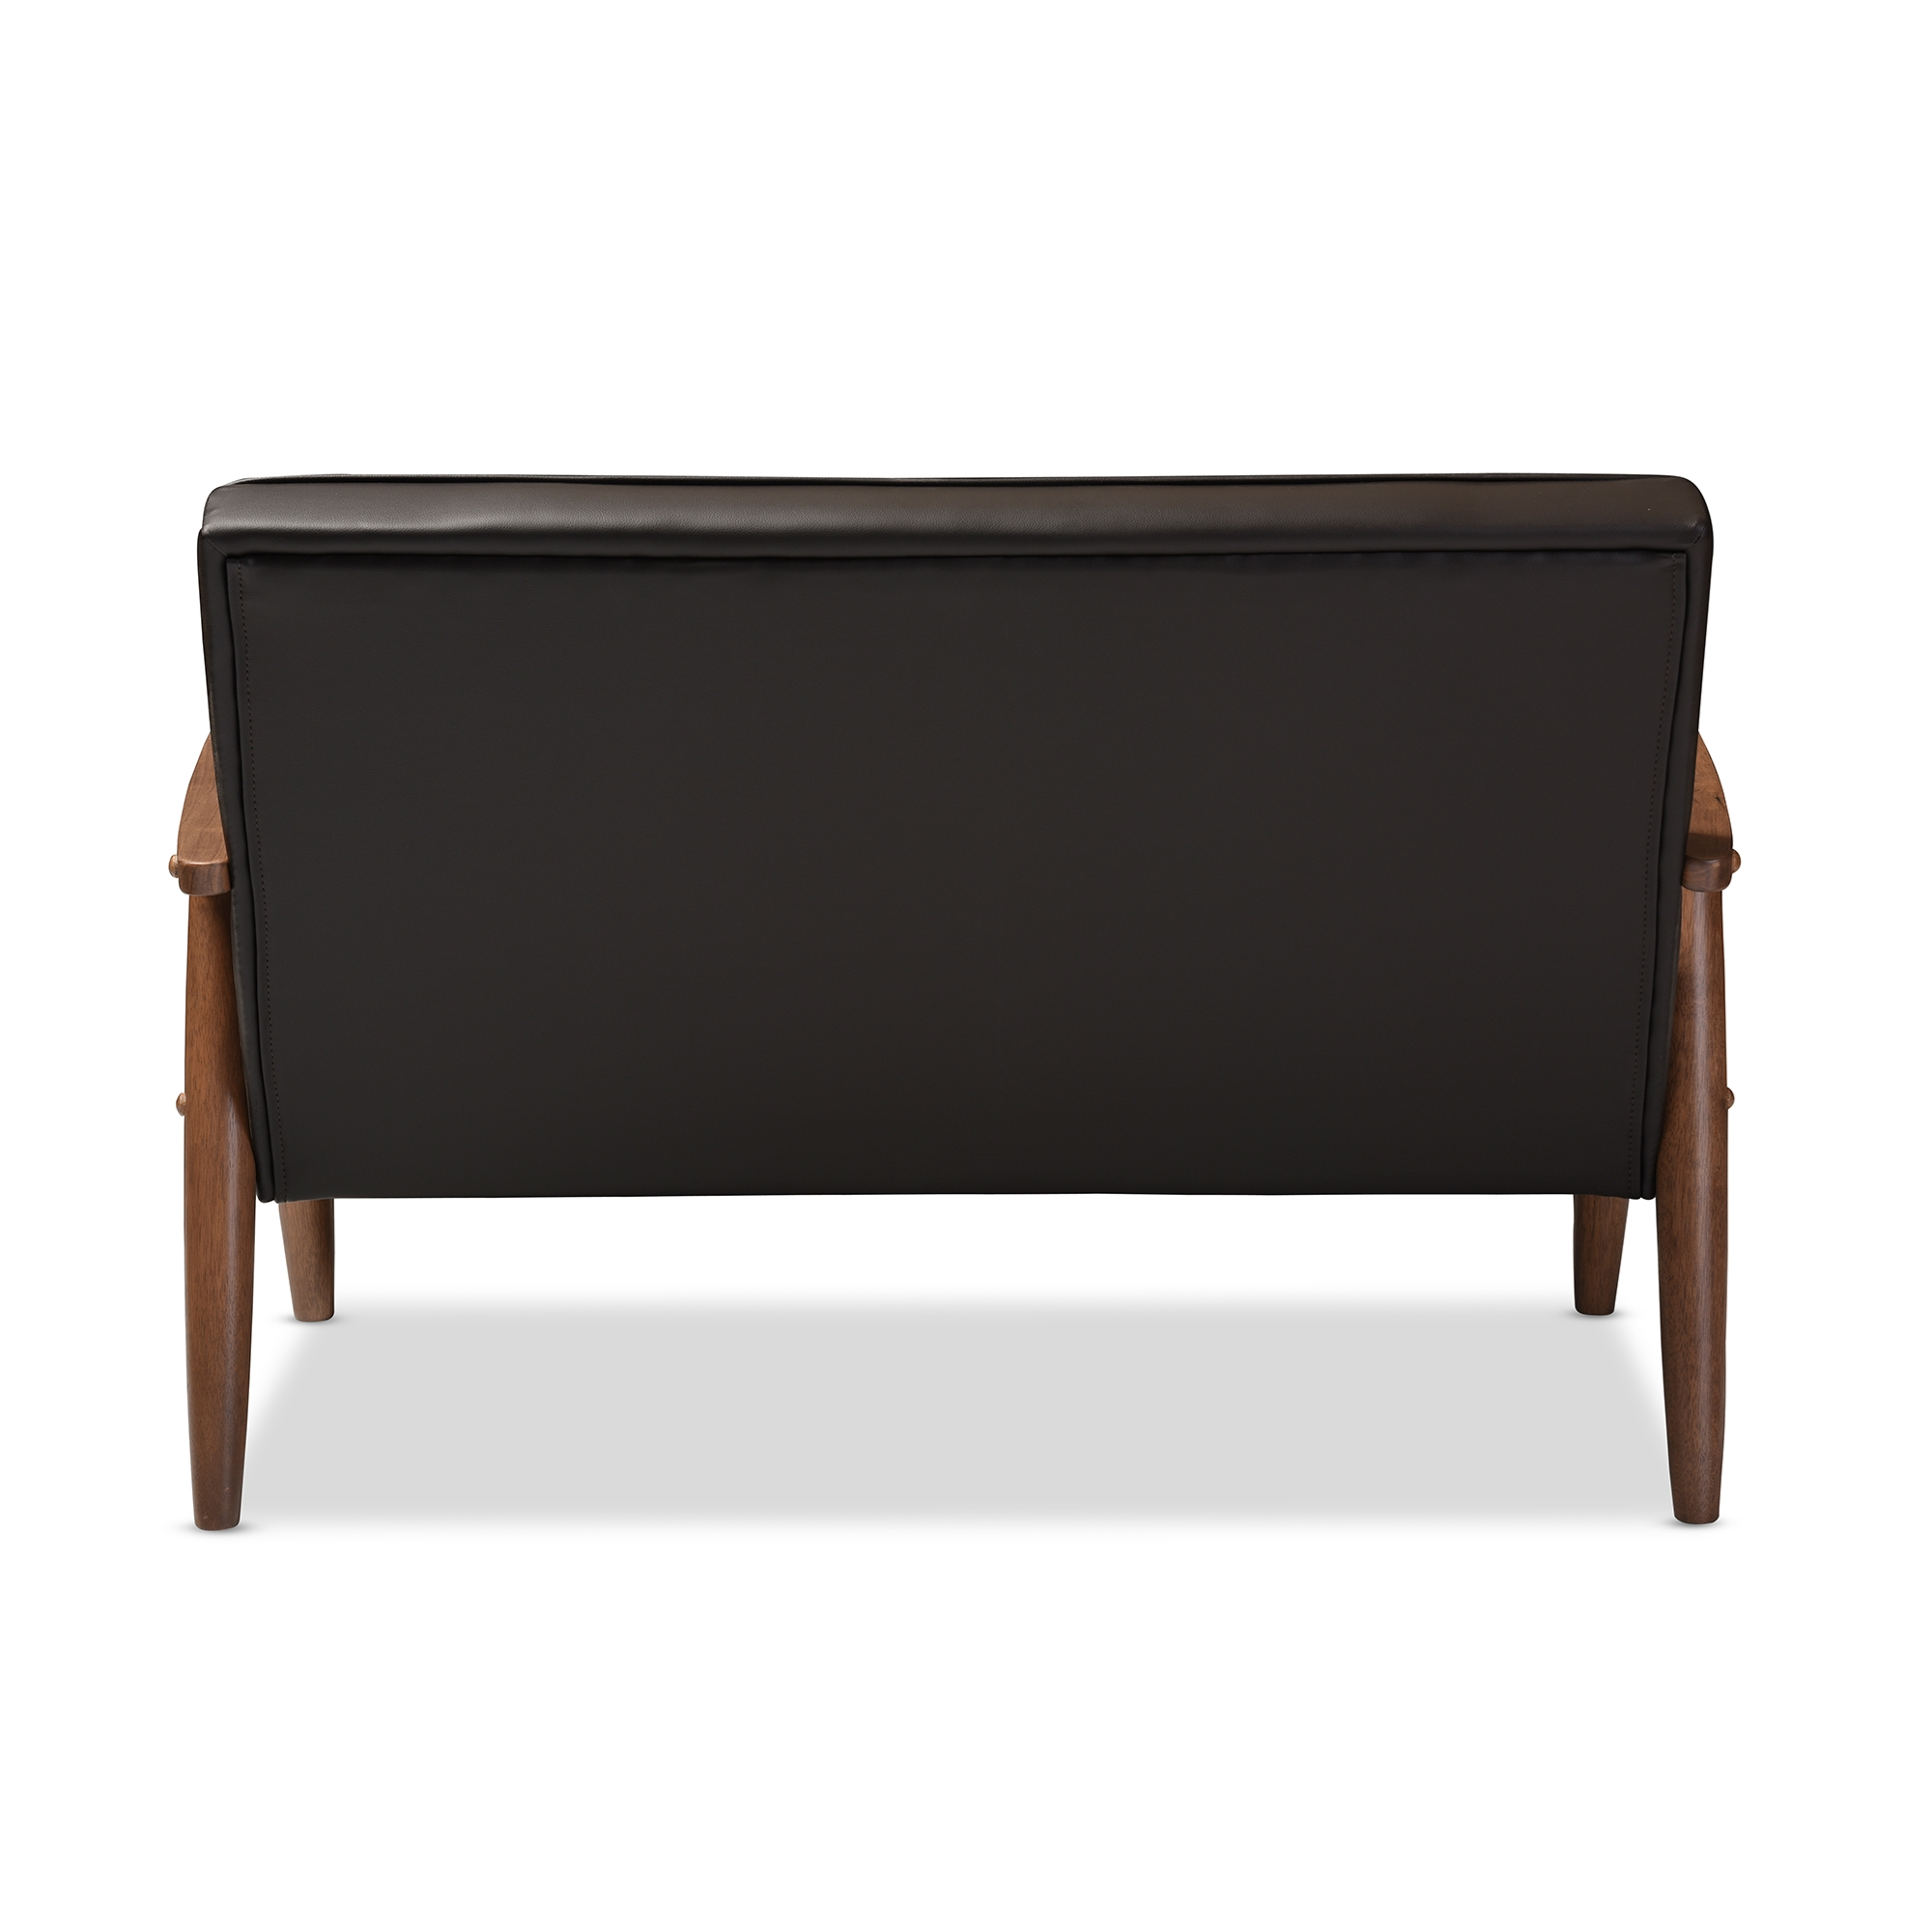 baxton studio sorrento midcentury retro modern brown faux leather upholstered wooden 2seater